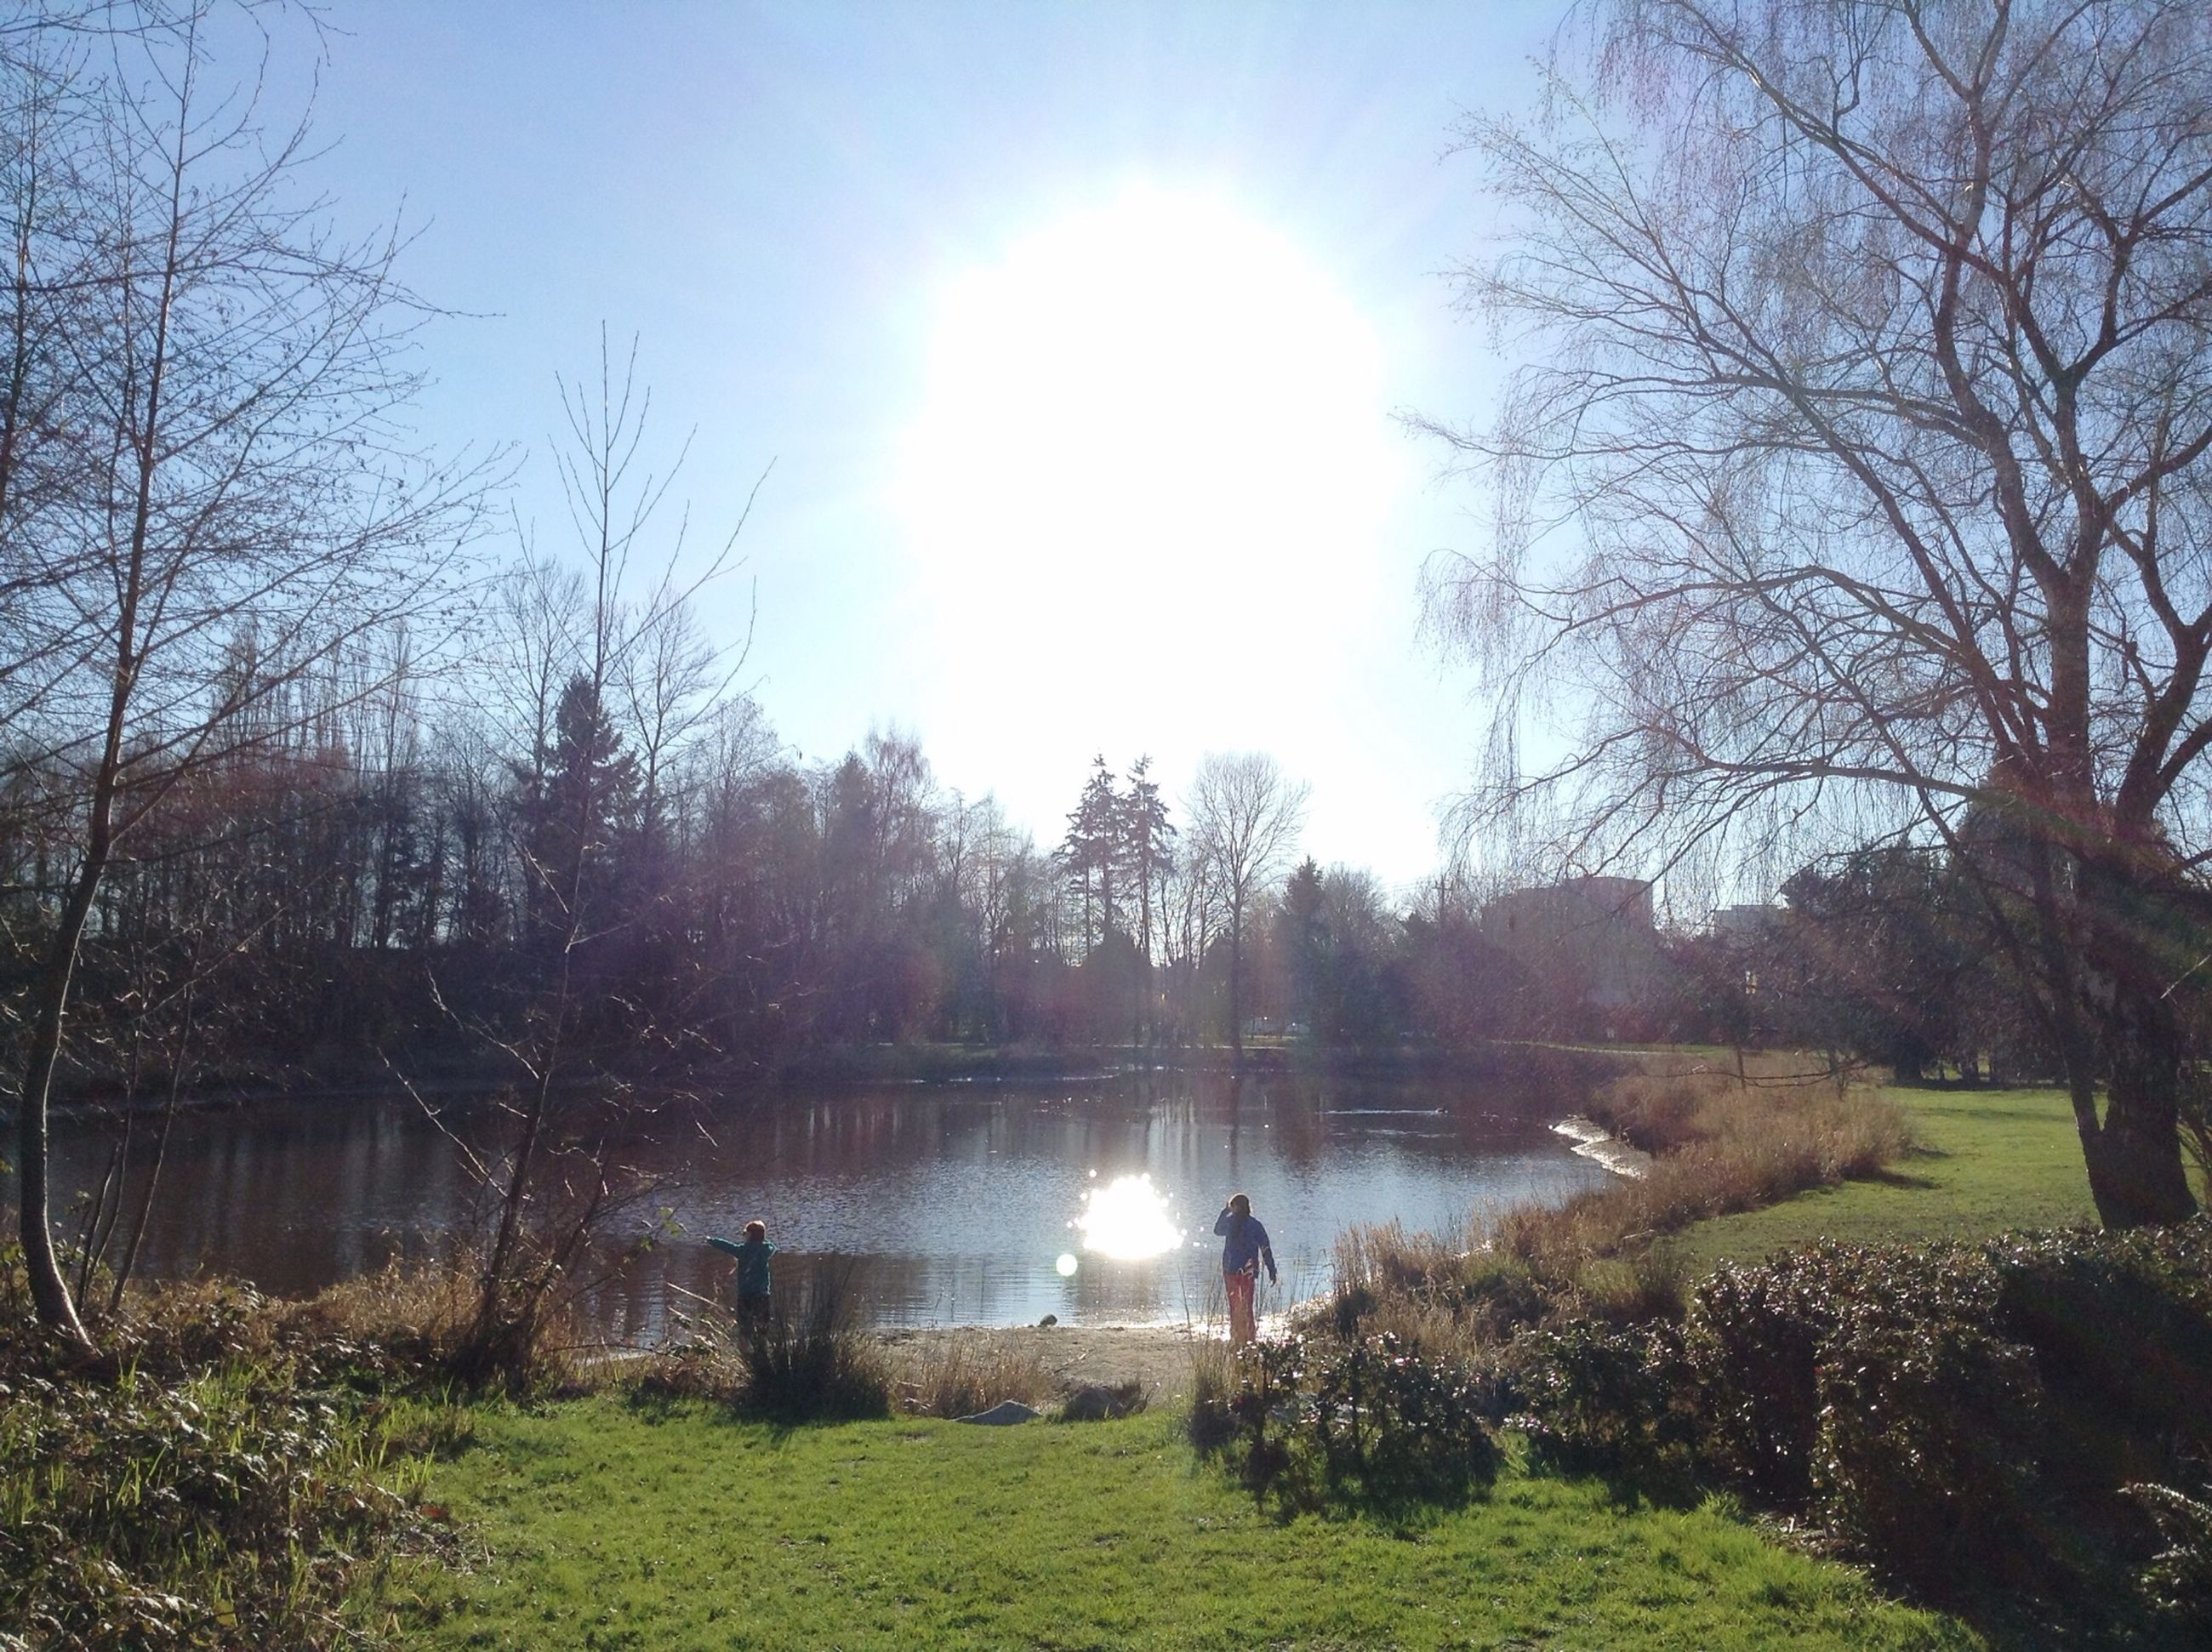 water, tree, sun, sunlight, grass, tranquil scene, tranquility, reflection, sunbeam, lake, sky, scenics, nature, beauty in nature, lens flare, growth, sunny, pond, river, outdoors